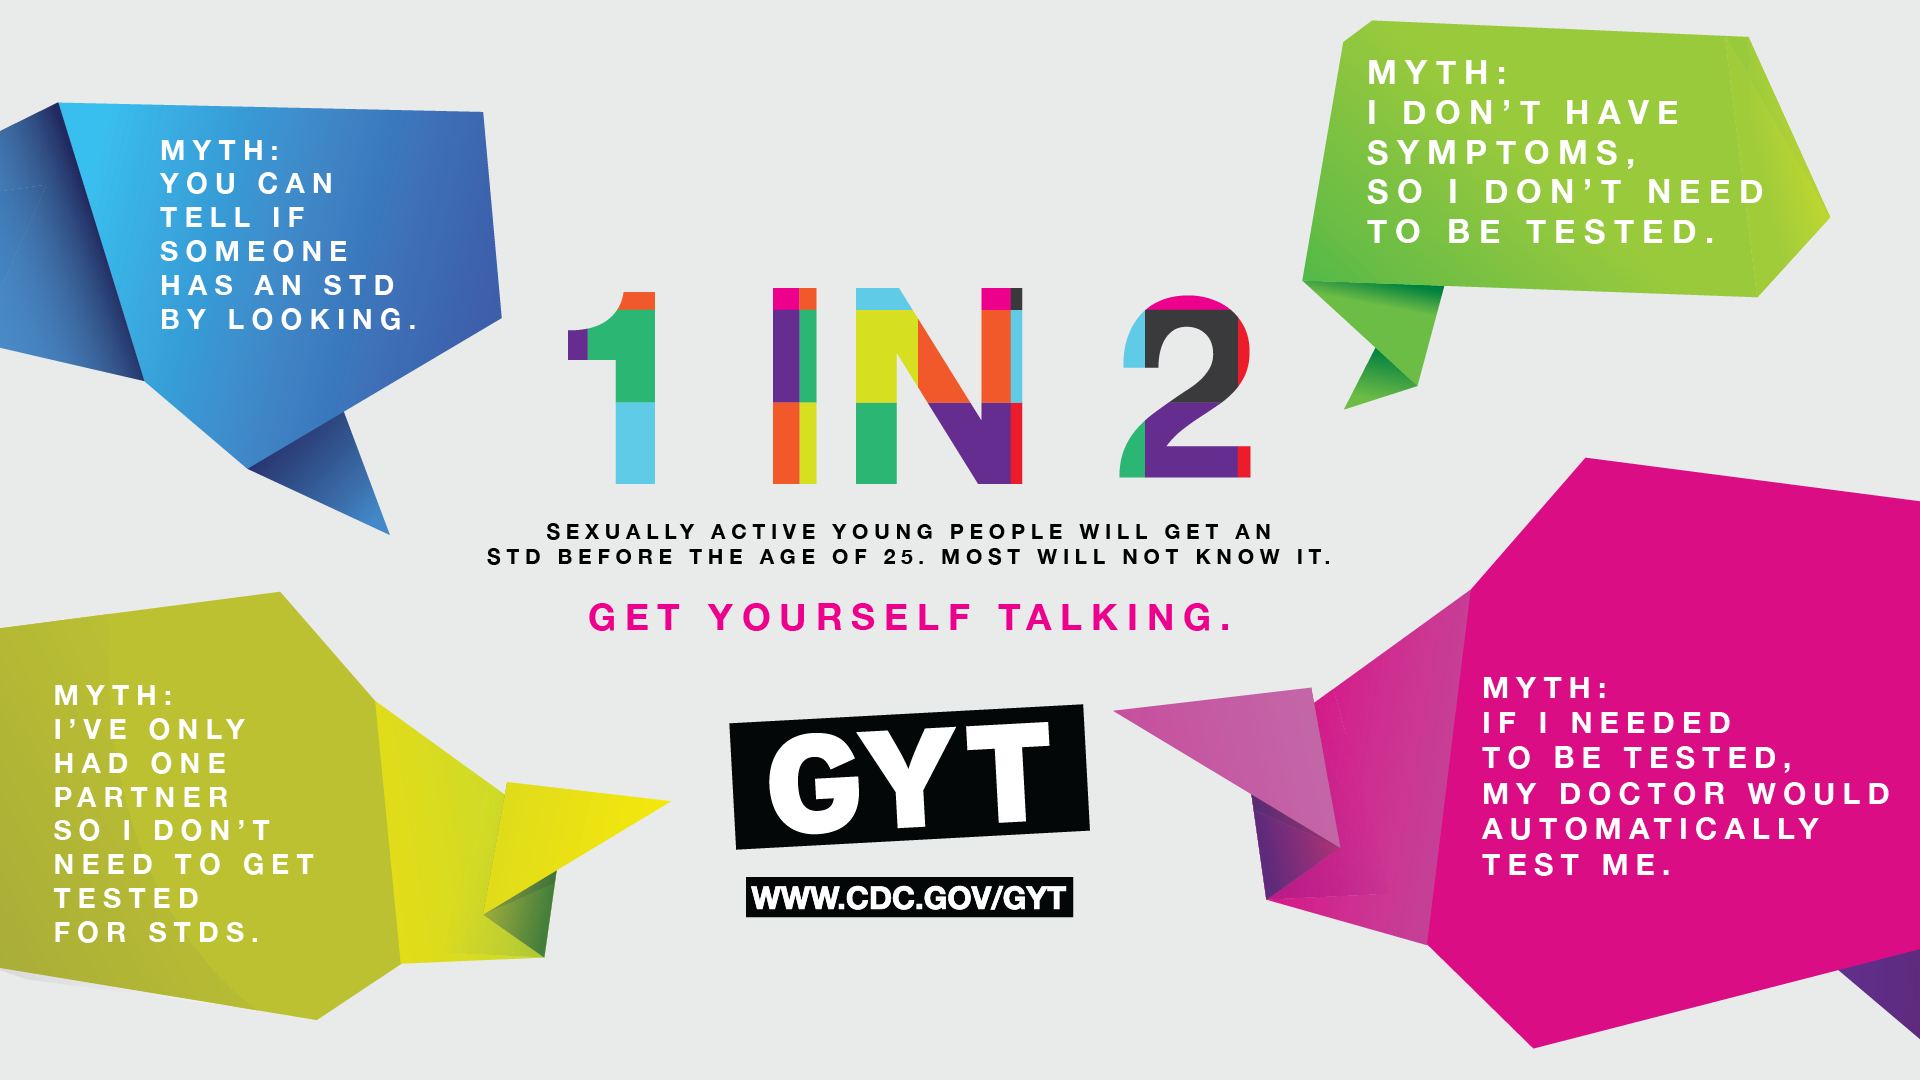 1 in 2 sexually active young people will get an STD before the age of 23. Most will not know it.  Get yourself talking.